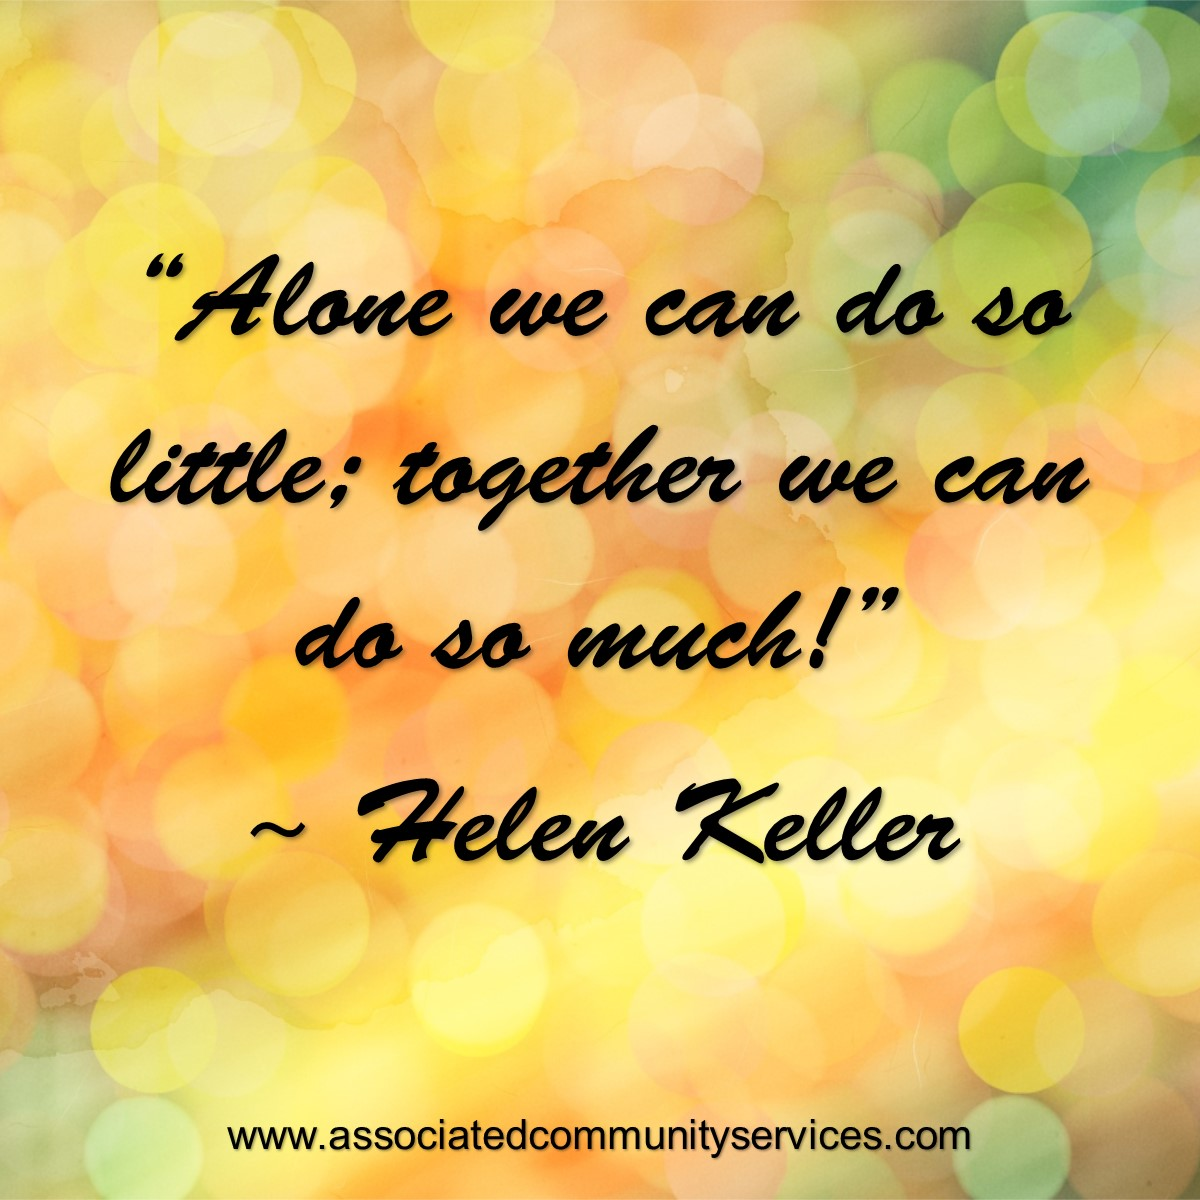 Acs Professional Fundraiser Alone We Can Do So Little Together We